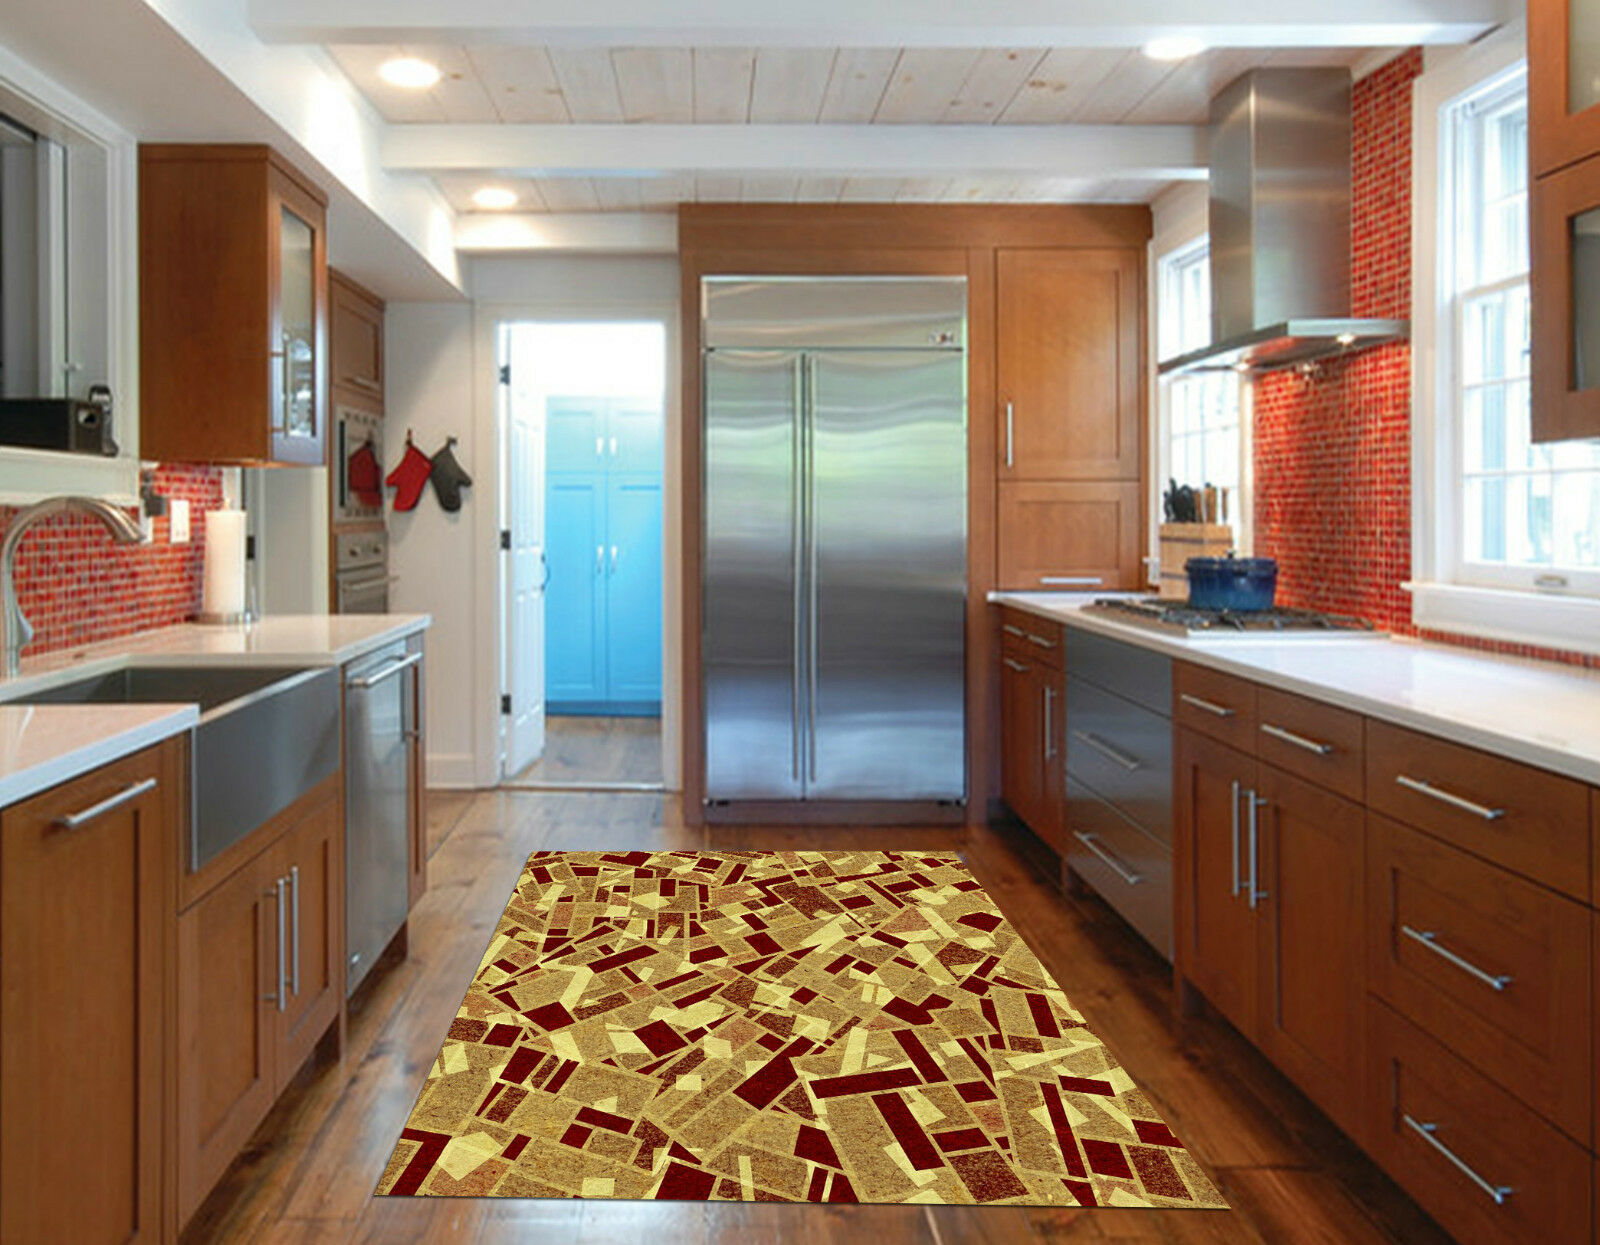 3D Stylish Pattern Kitchen Mat Floor Mural Wall Print Wall Deco AJ WALLPAPER CA